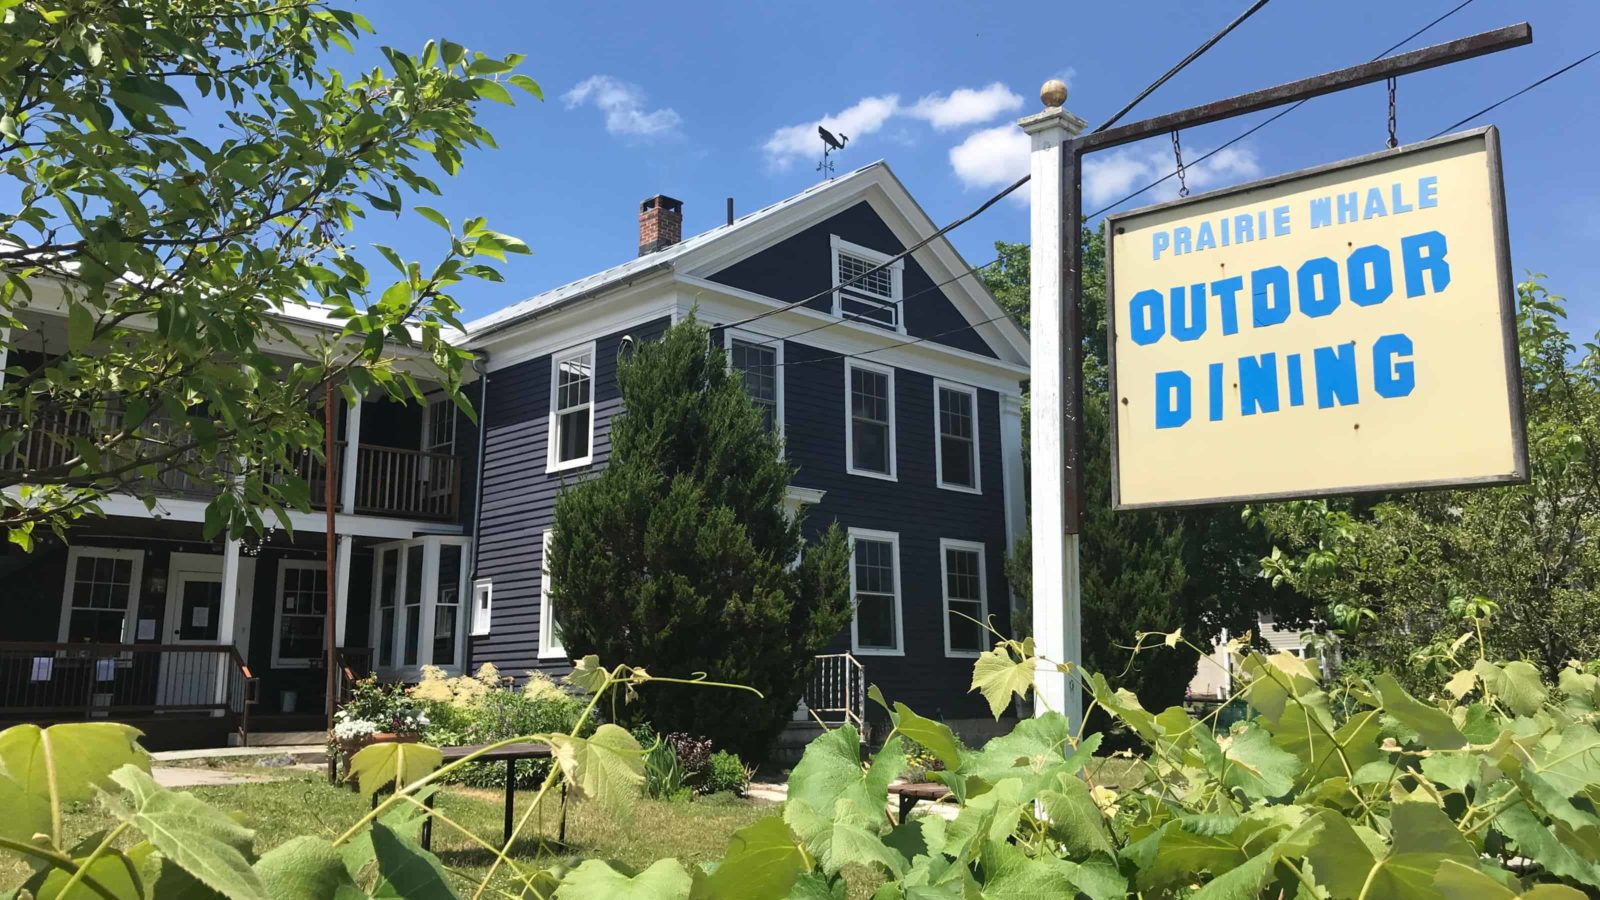 The Prairie Whale in Great Barrington adapts its gardens for outdoor dining in the pandemic.